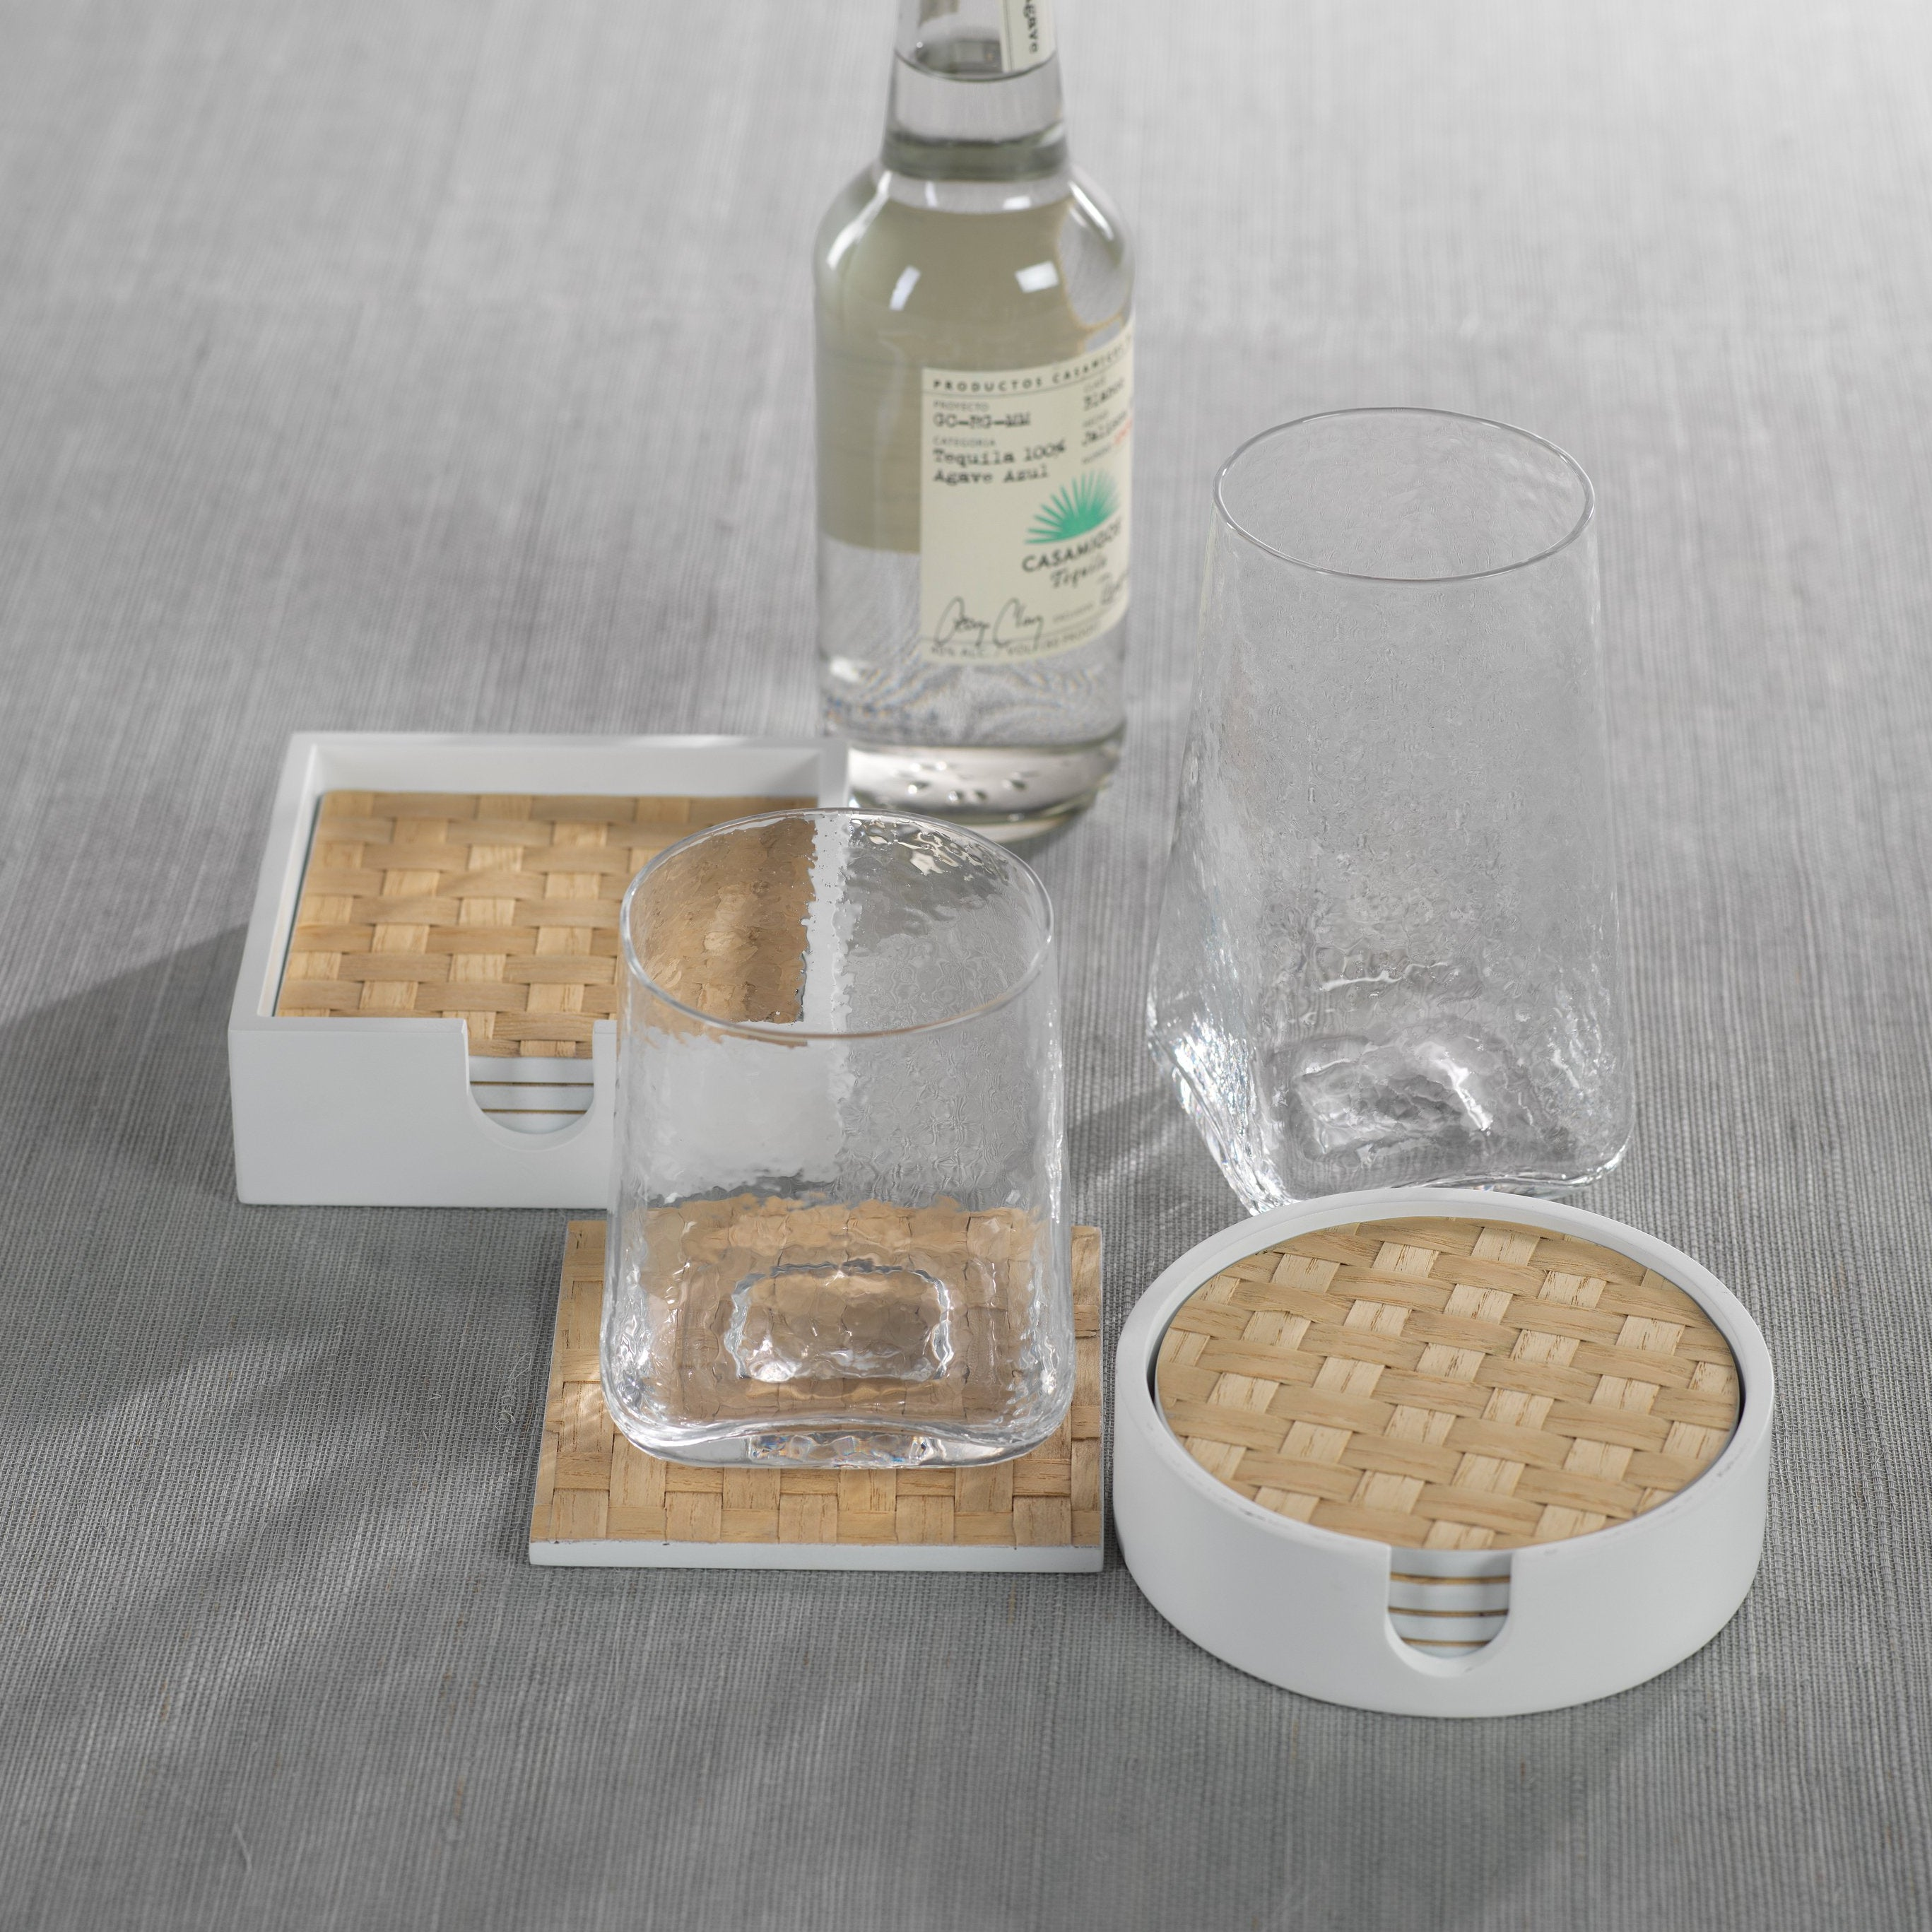 S/4 Woven Ash Coaster in White Tray - CARLYLE AVENUE